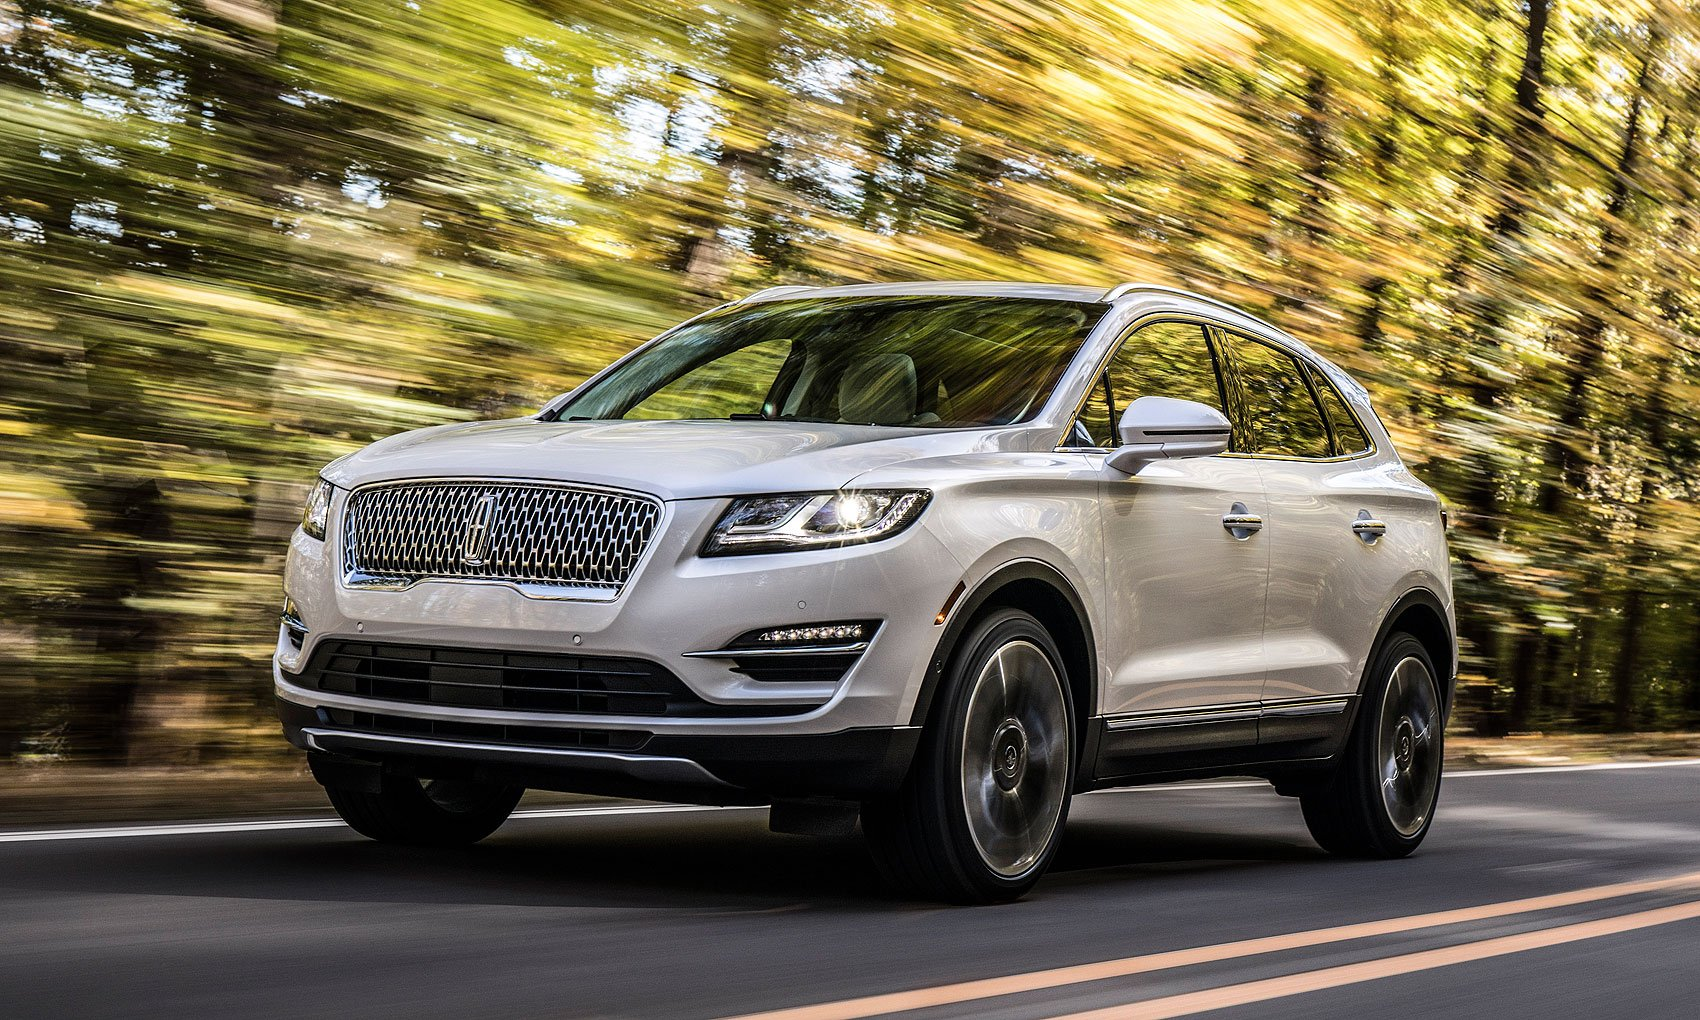 Lincoln S Freshened 2019 Mkc Gets New Mesh Grille Tech